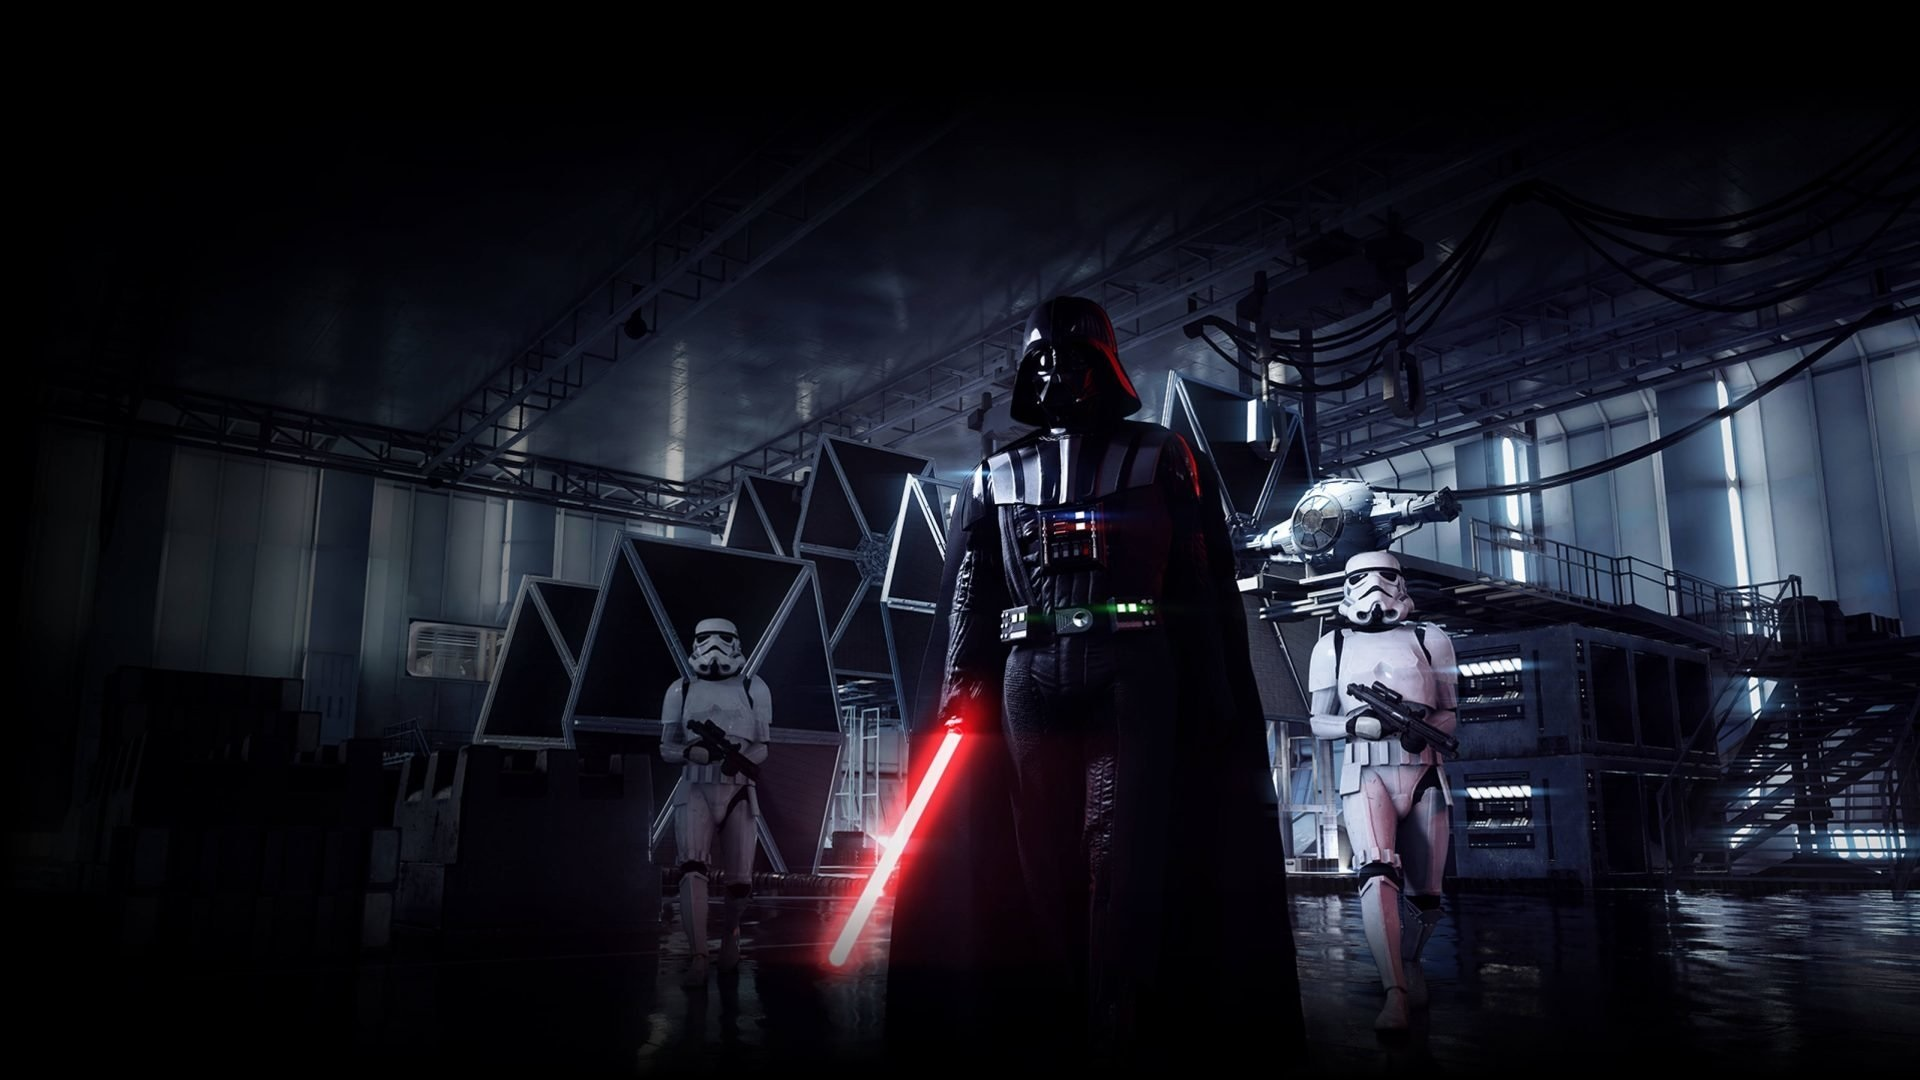 Save Star Wars Battlefront II HD Wallpapers - Read games ... - photo#49